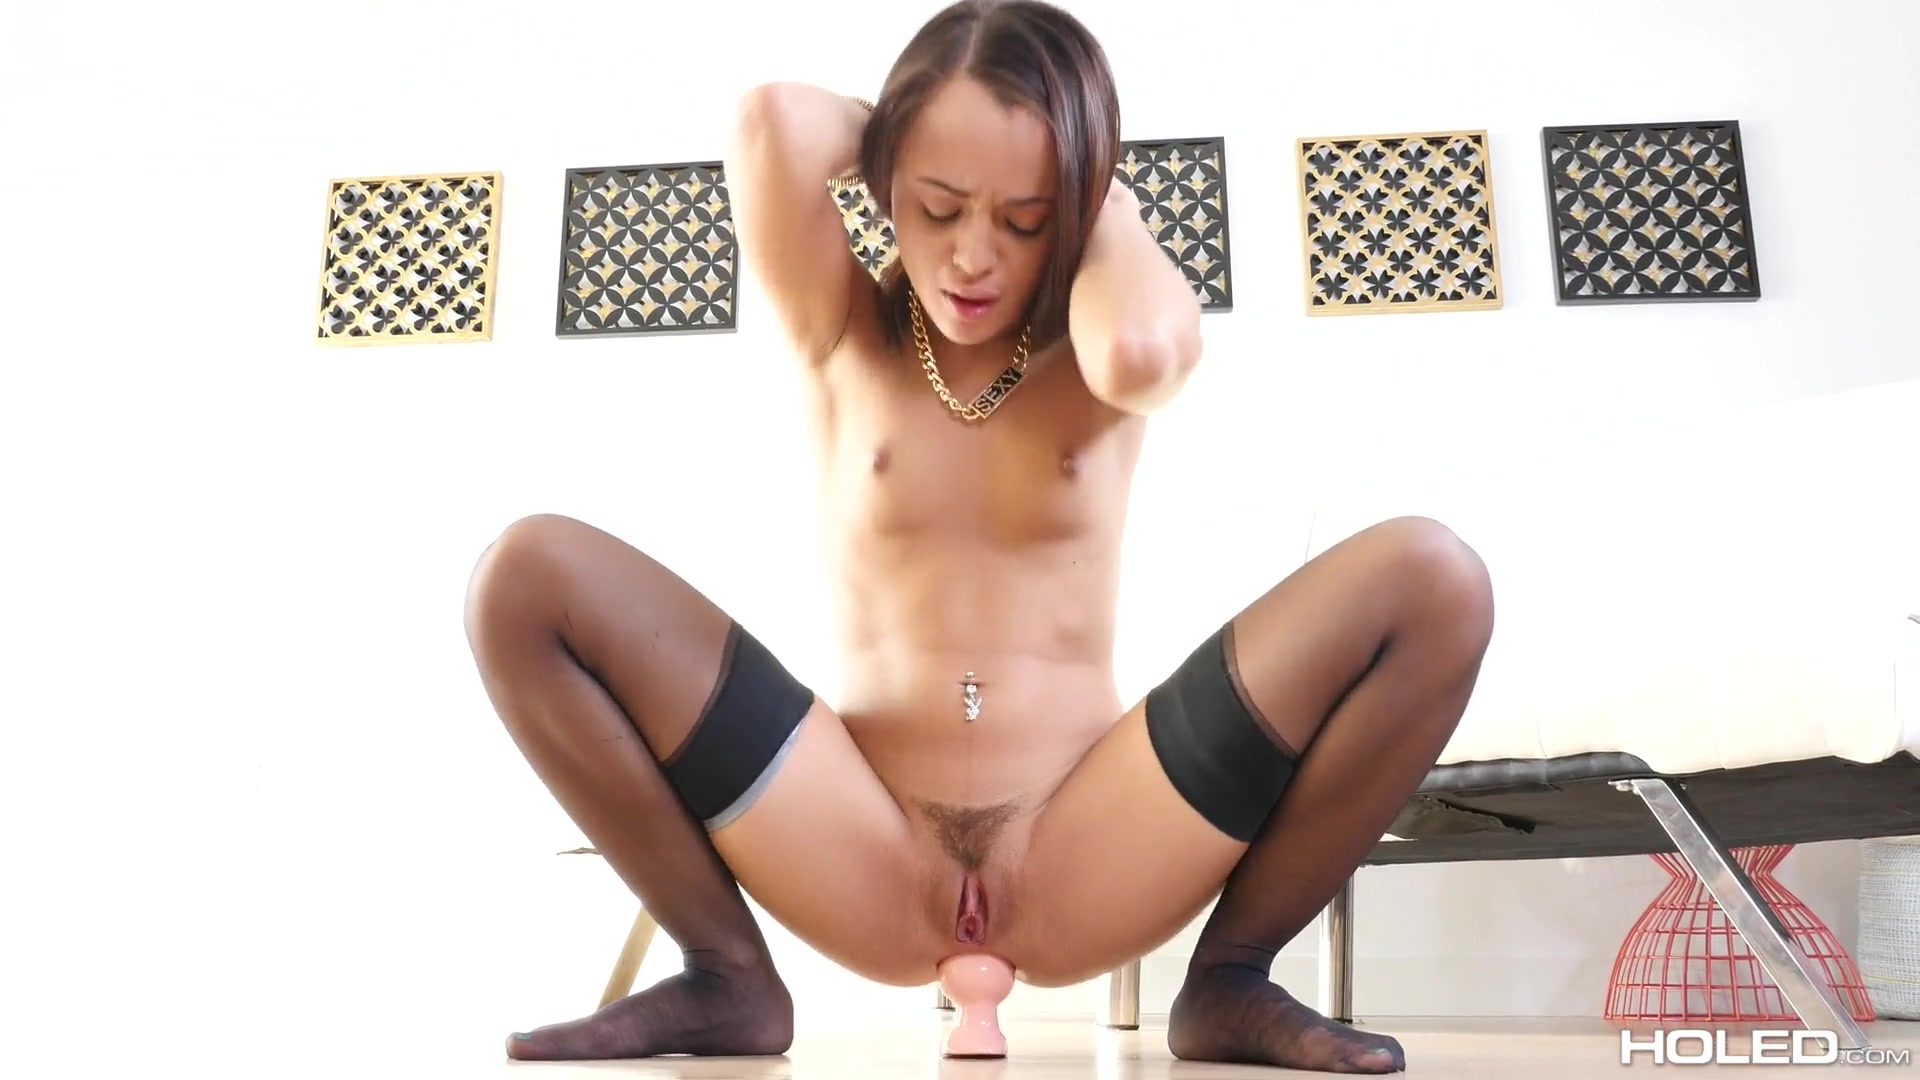 Deeply penetrating Holly Hendrix in her sexy asshole